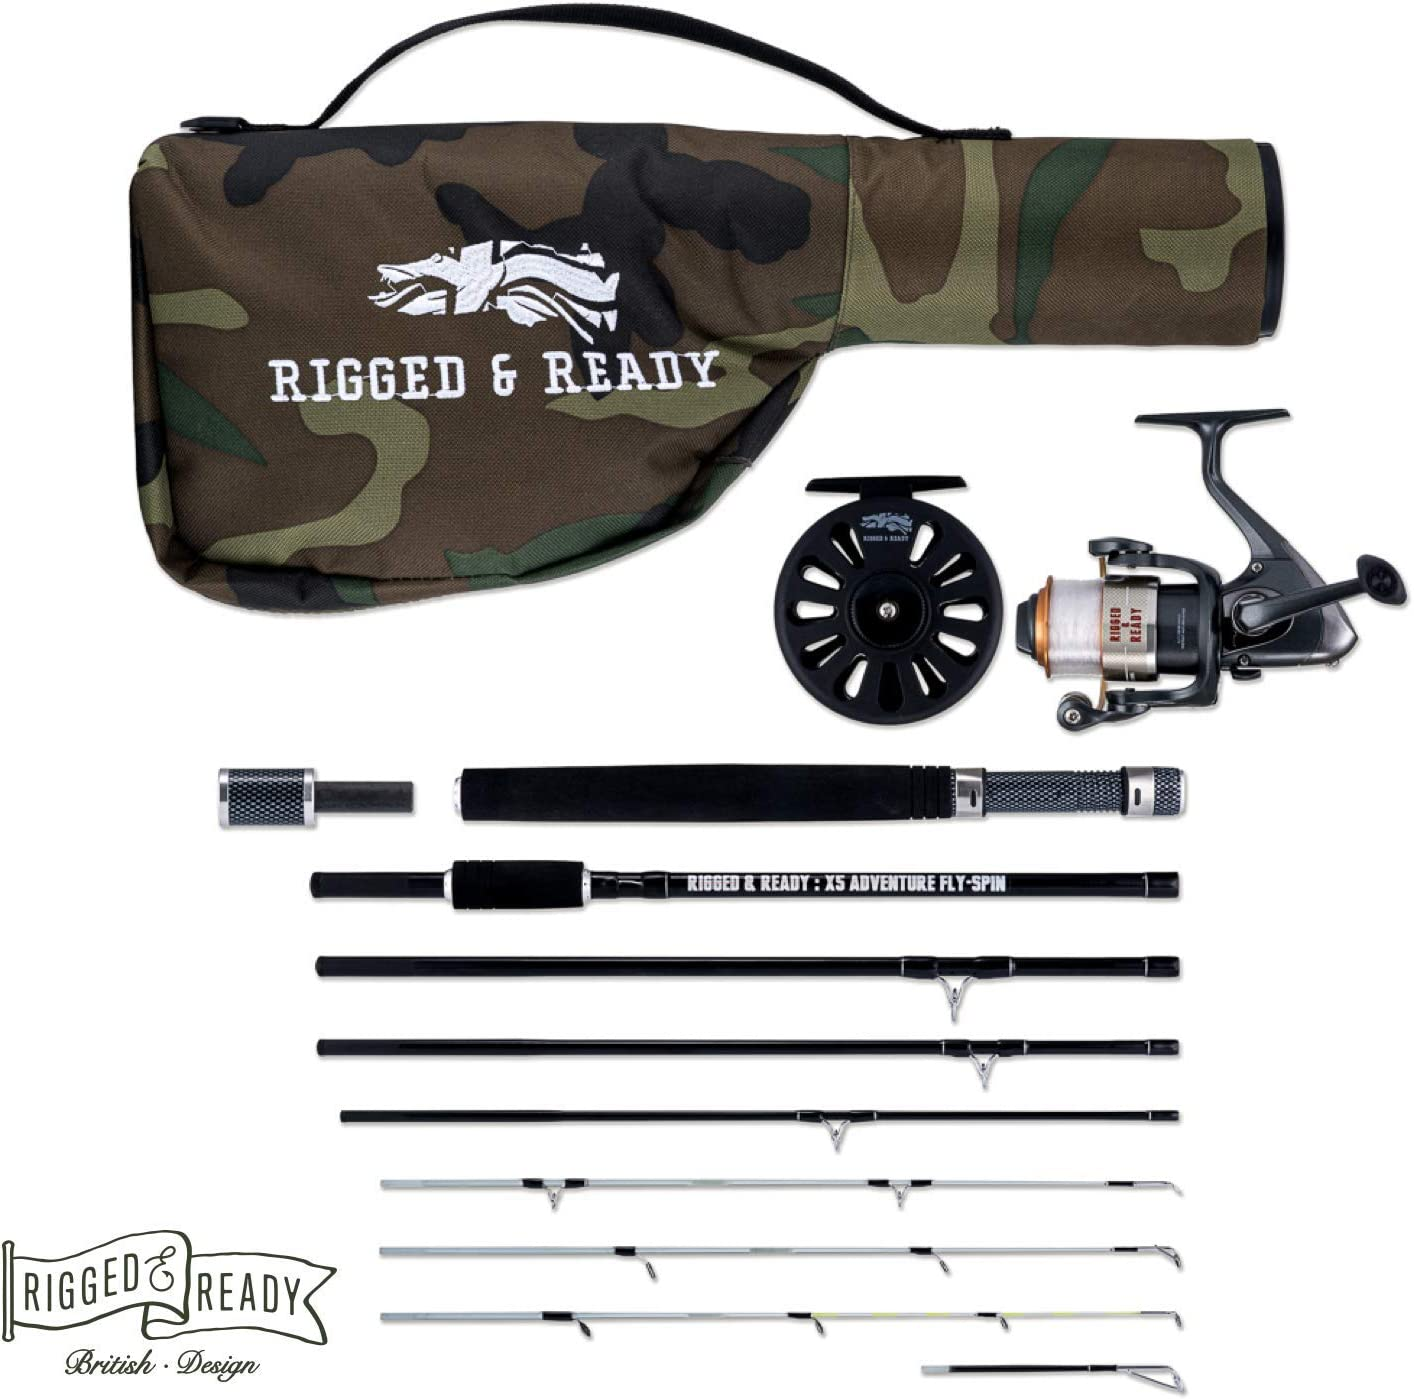 The X5 Adventure Travel Fishing KIT. 5 Fishing RODS in ONE. Interchangeable Spin, Fly, Bait, Travel Fishing Rod and reels. for Fly Fishing, Saltwater Fishing and Much More, All in a Compact Format